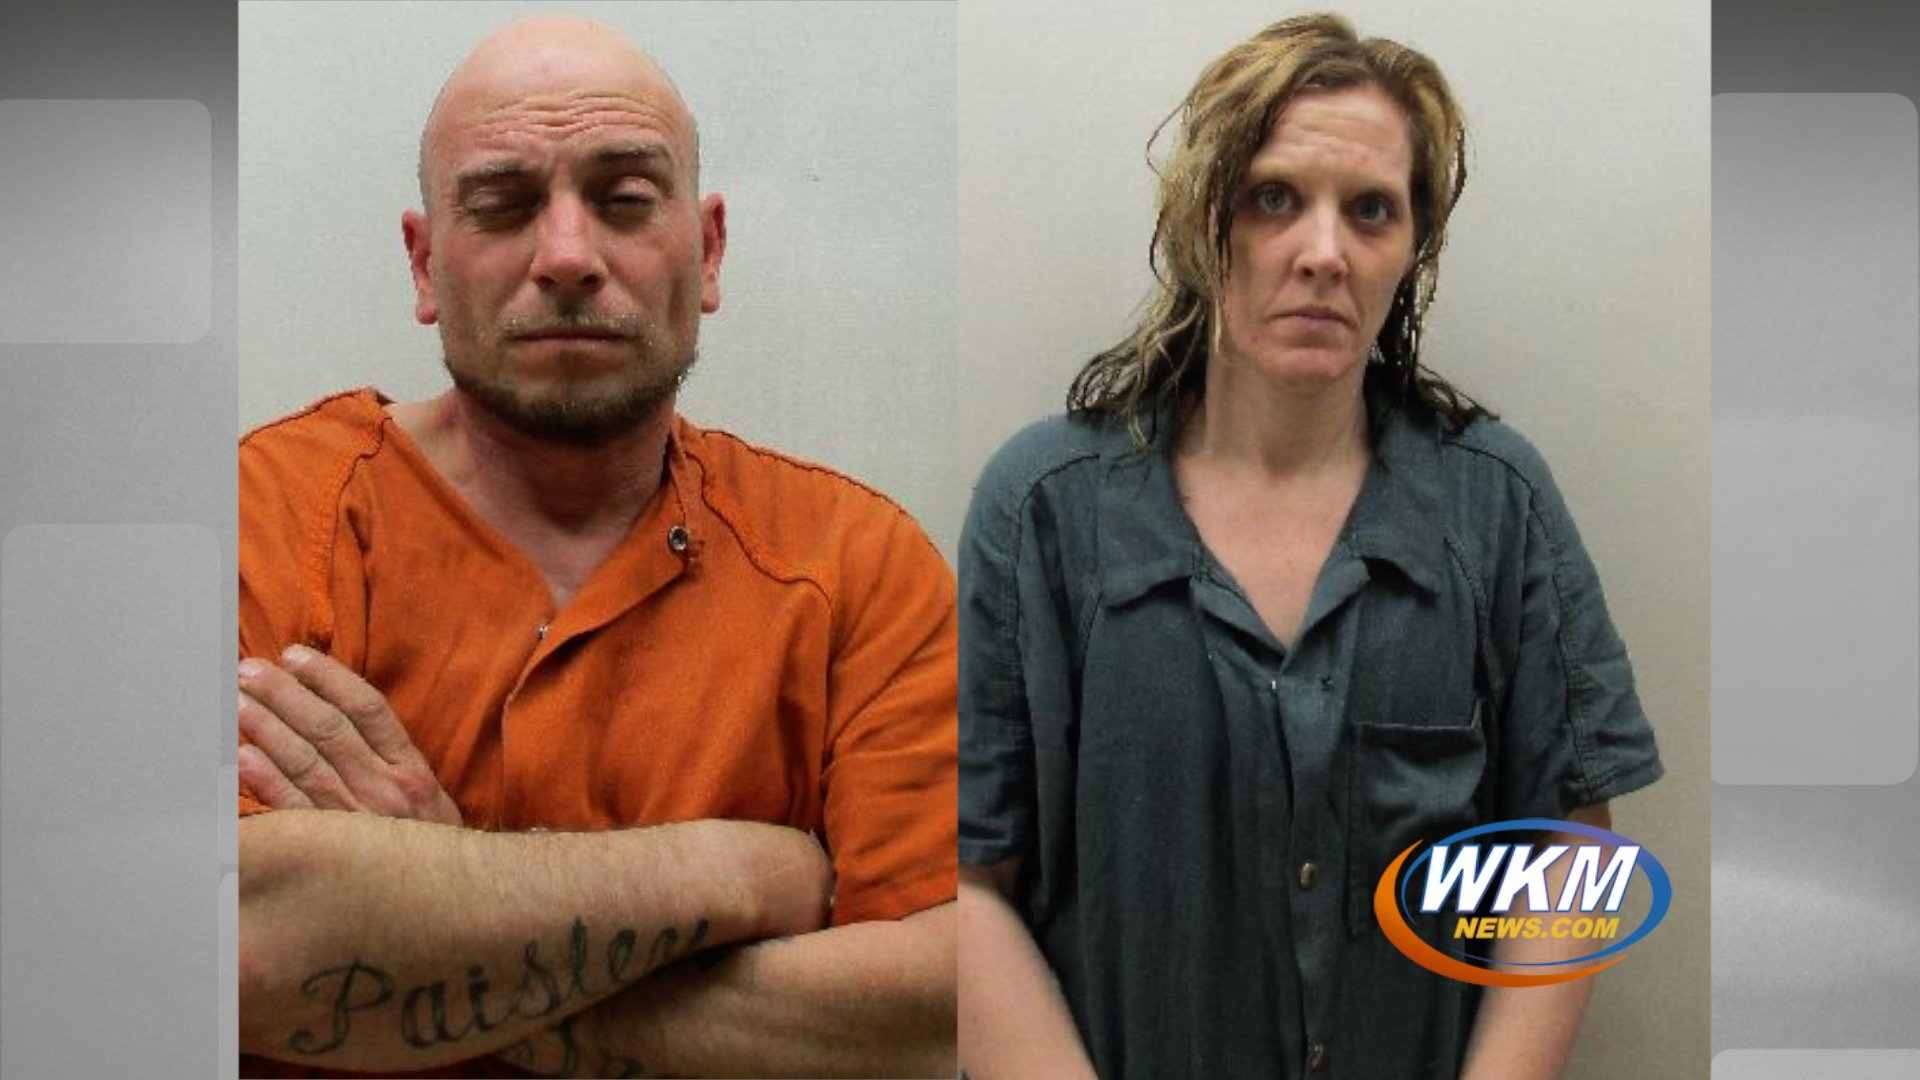 Two Hanover Residents Arrested for Burglary and Aggravated Battery